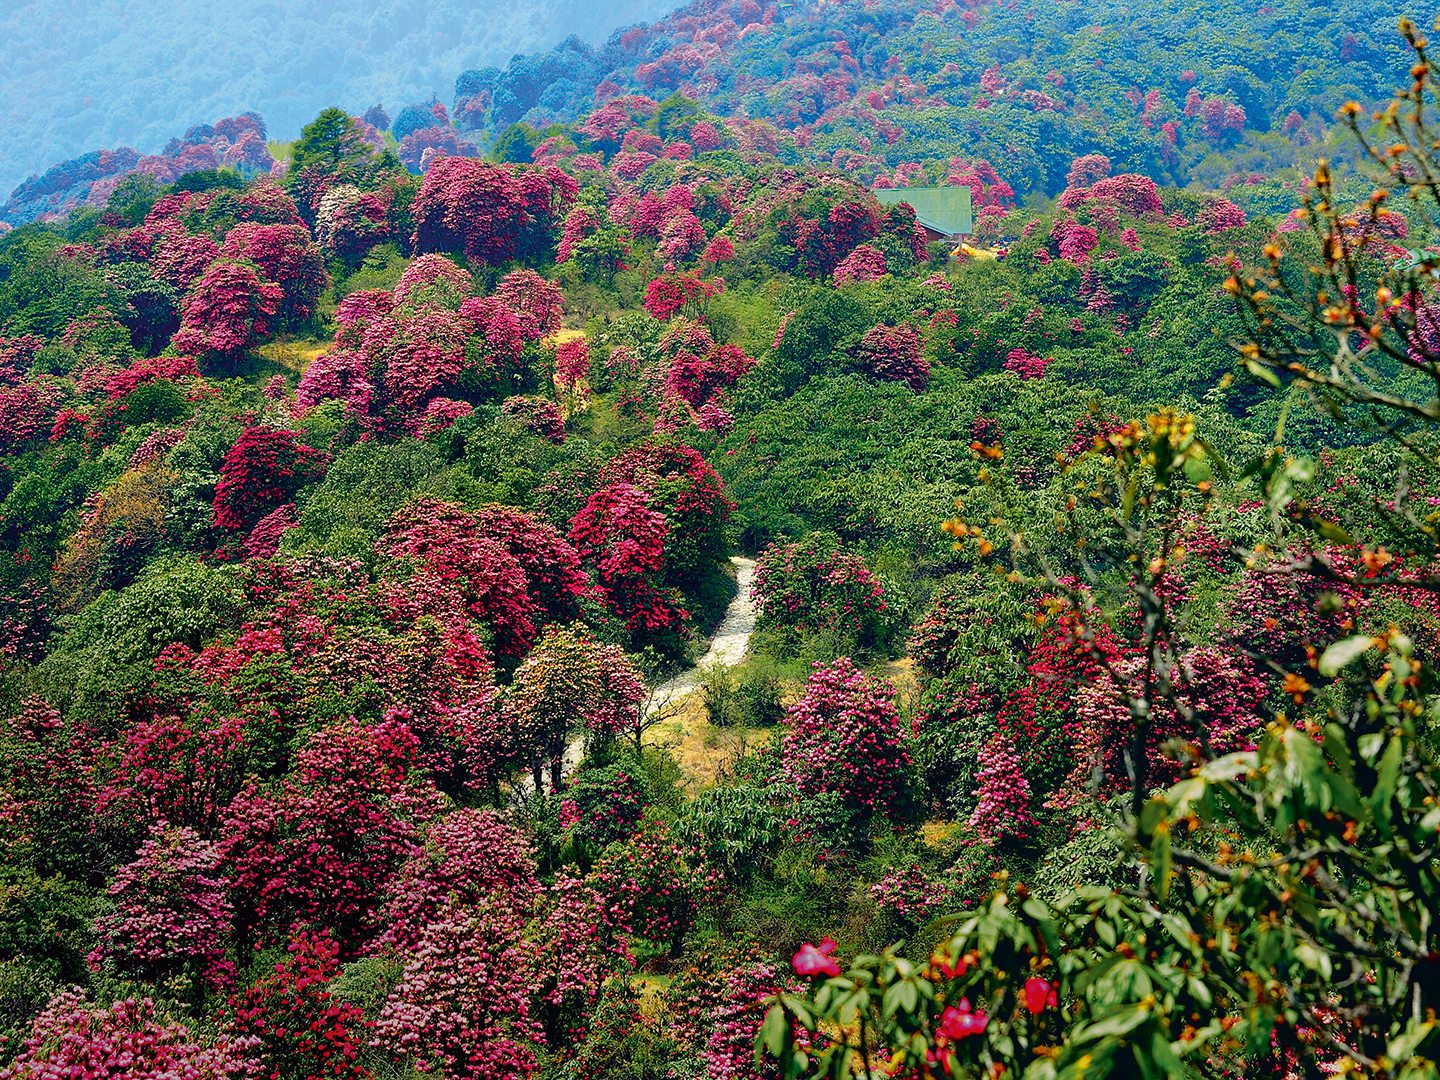 From late March to early May, rhododendrons blooming in various colours set the hillsides of Barsey Rhododendron Sanctuary ablaze. Trekking routes through the sanctuary have their share of ups and downs, but one look at the colourful show melts away all fatigue. Photo: Rishad Saam Mehta